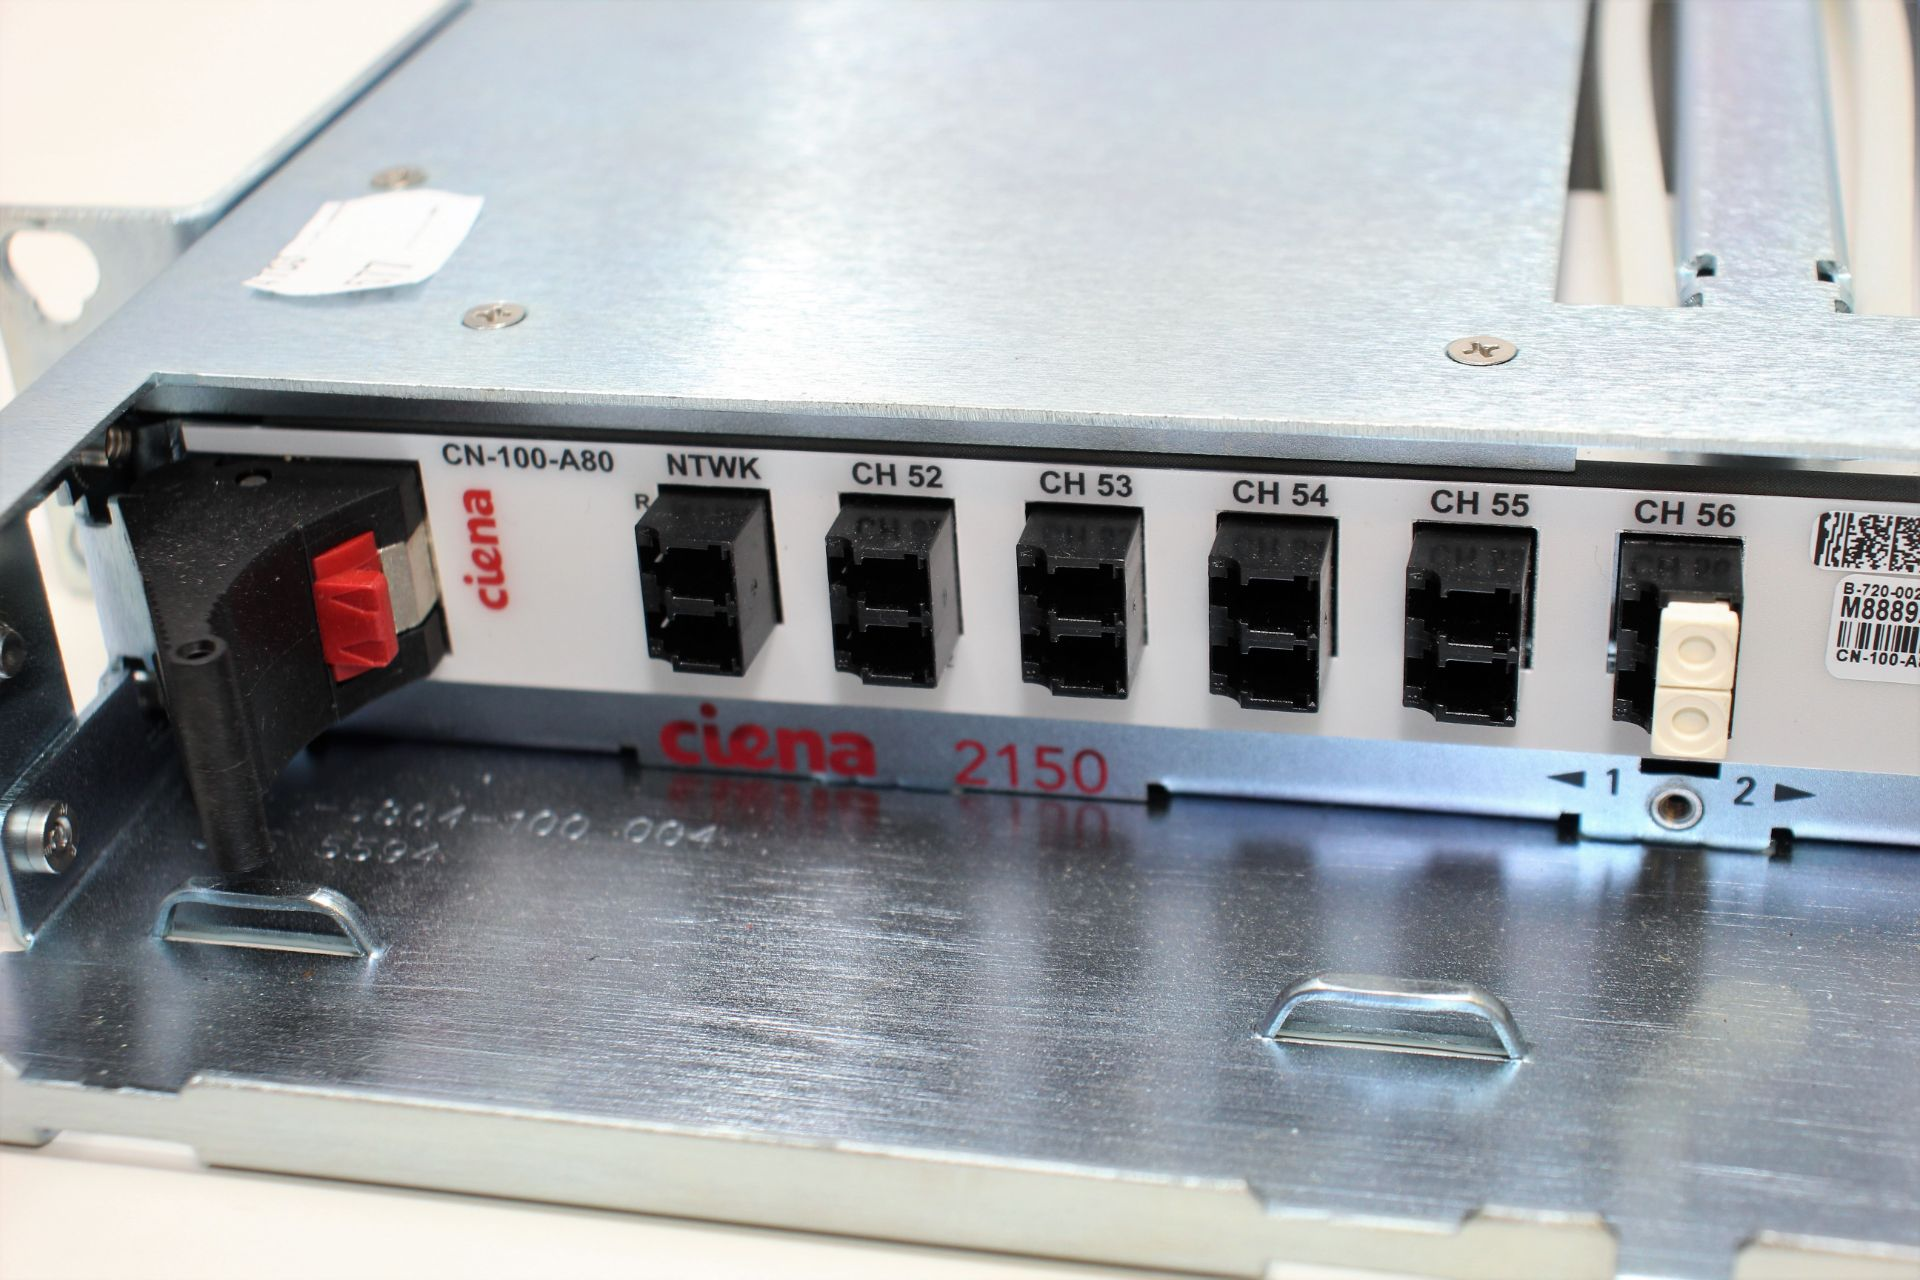 A pre-owned Ciena CN-100-A80 B-720-0022-001 WM0AALWEAA M8942765 DWDM Module (Untested, sold as - Image 3 of 3